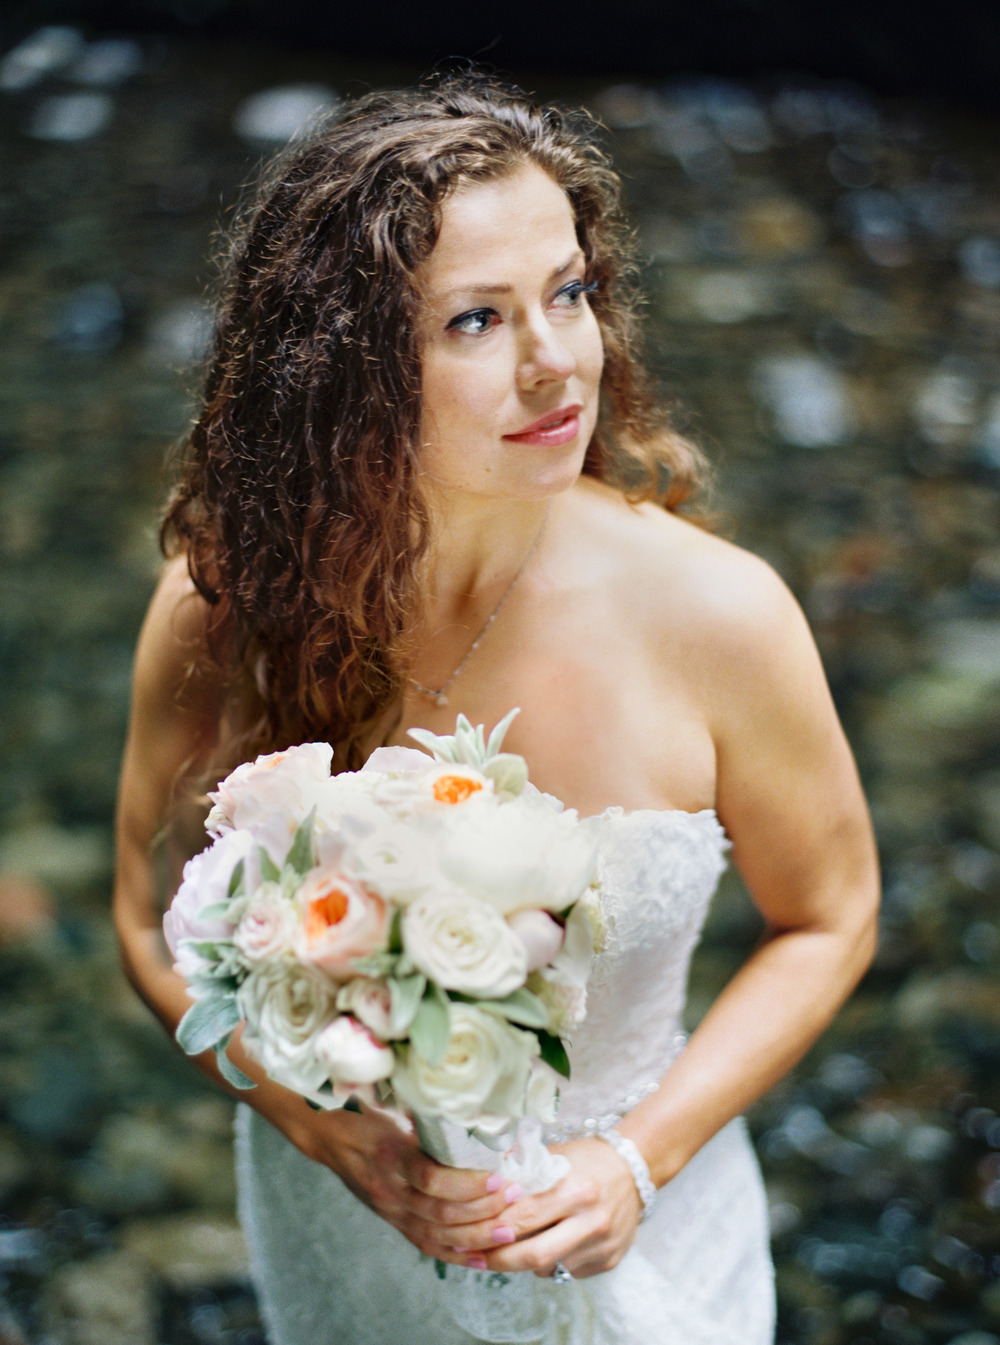 045OneontaGorge+Elopement+Photography+Videography+Oregon+OutliveCreative.jpg